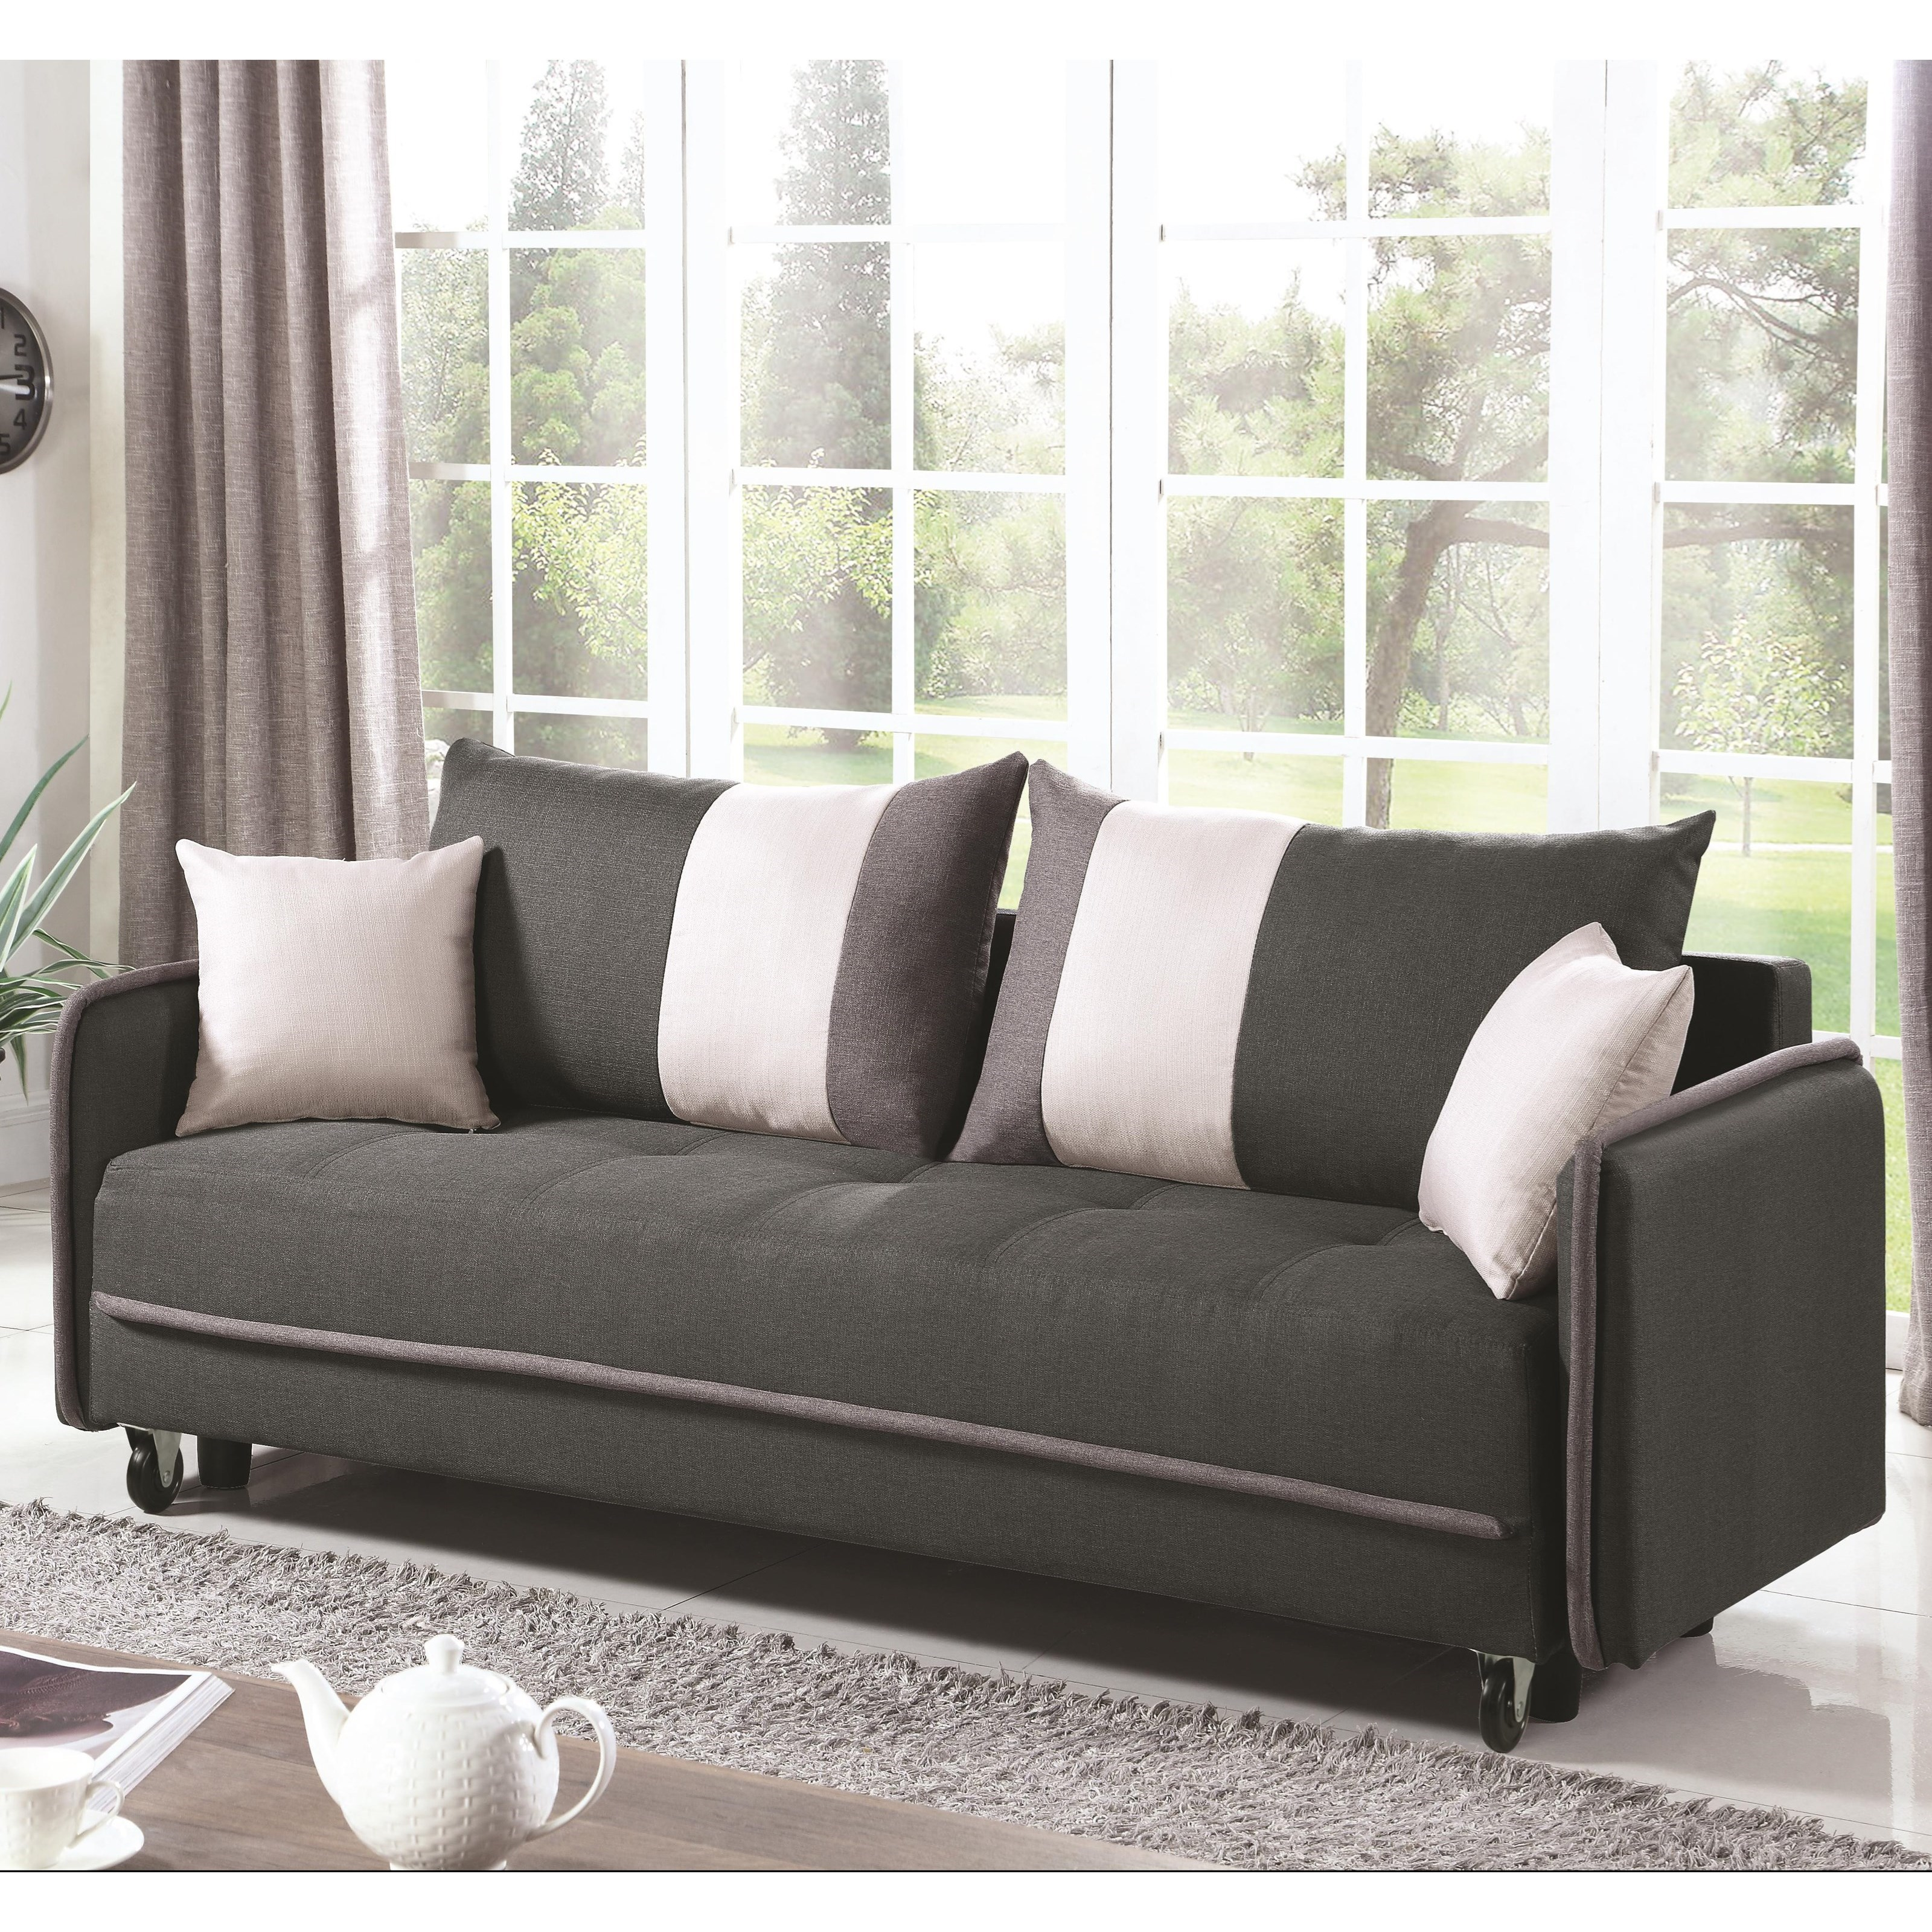 Coaster Sofa Beds And Futons Bed Item Number 500560